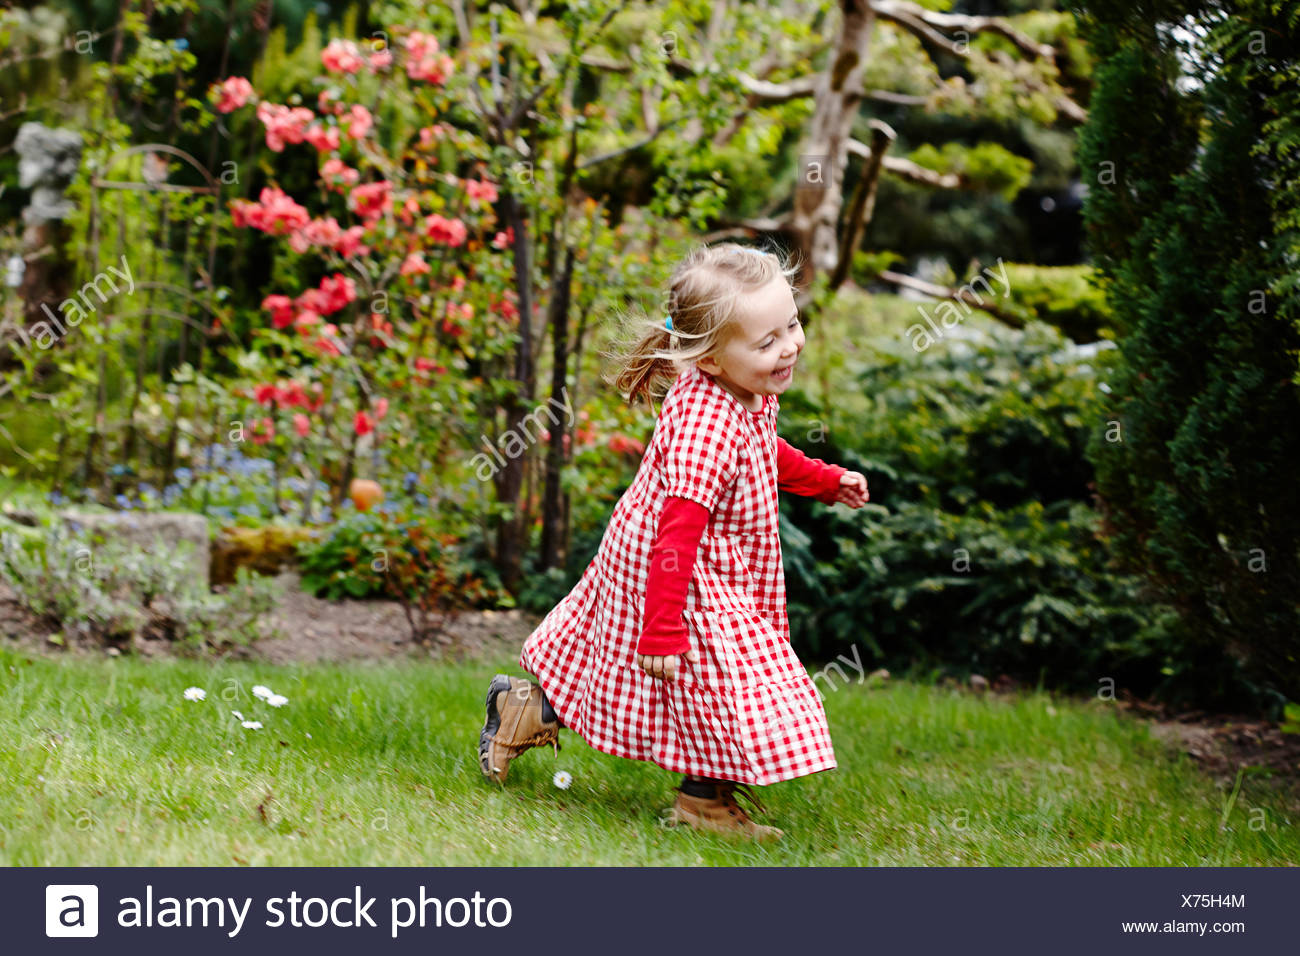 Young girl wearing gingham dress running in garden - Stock Image